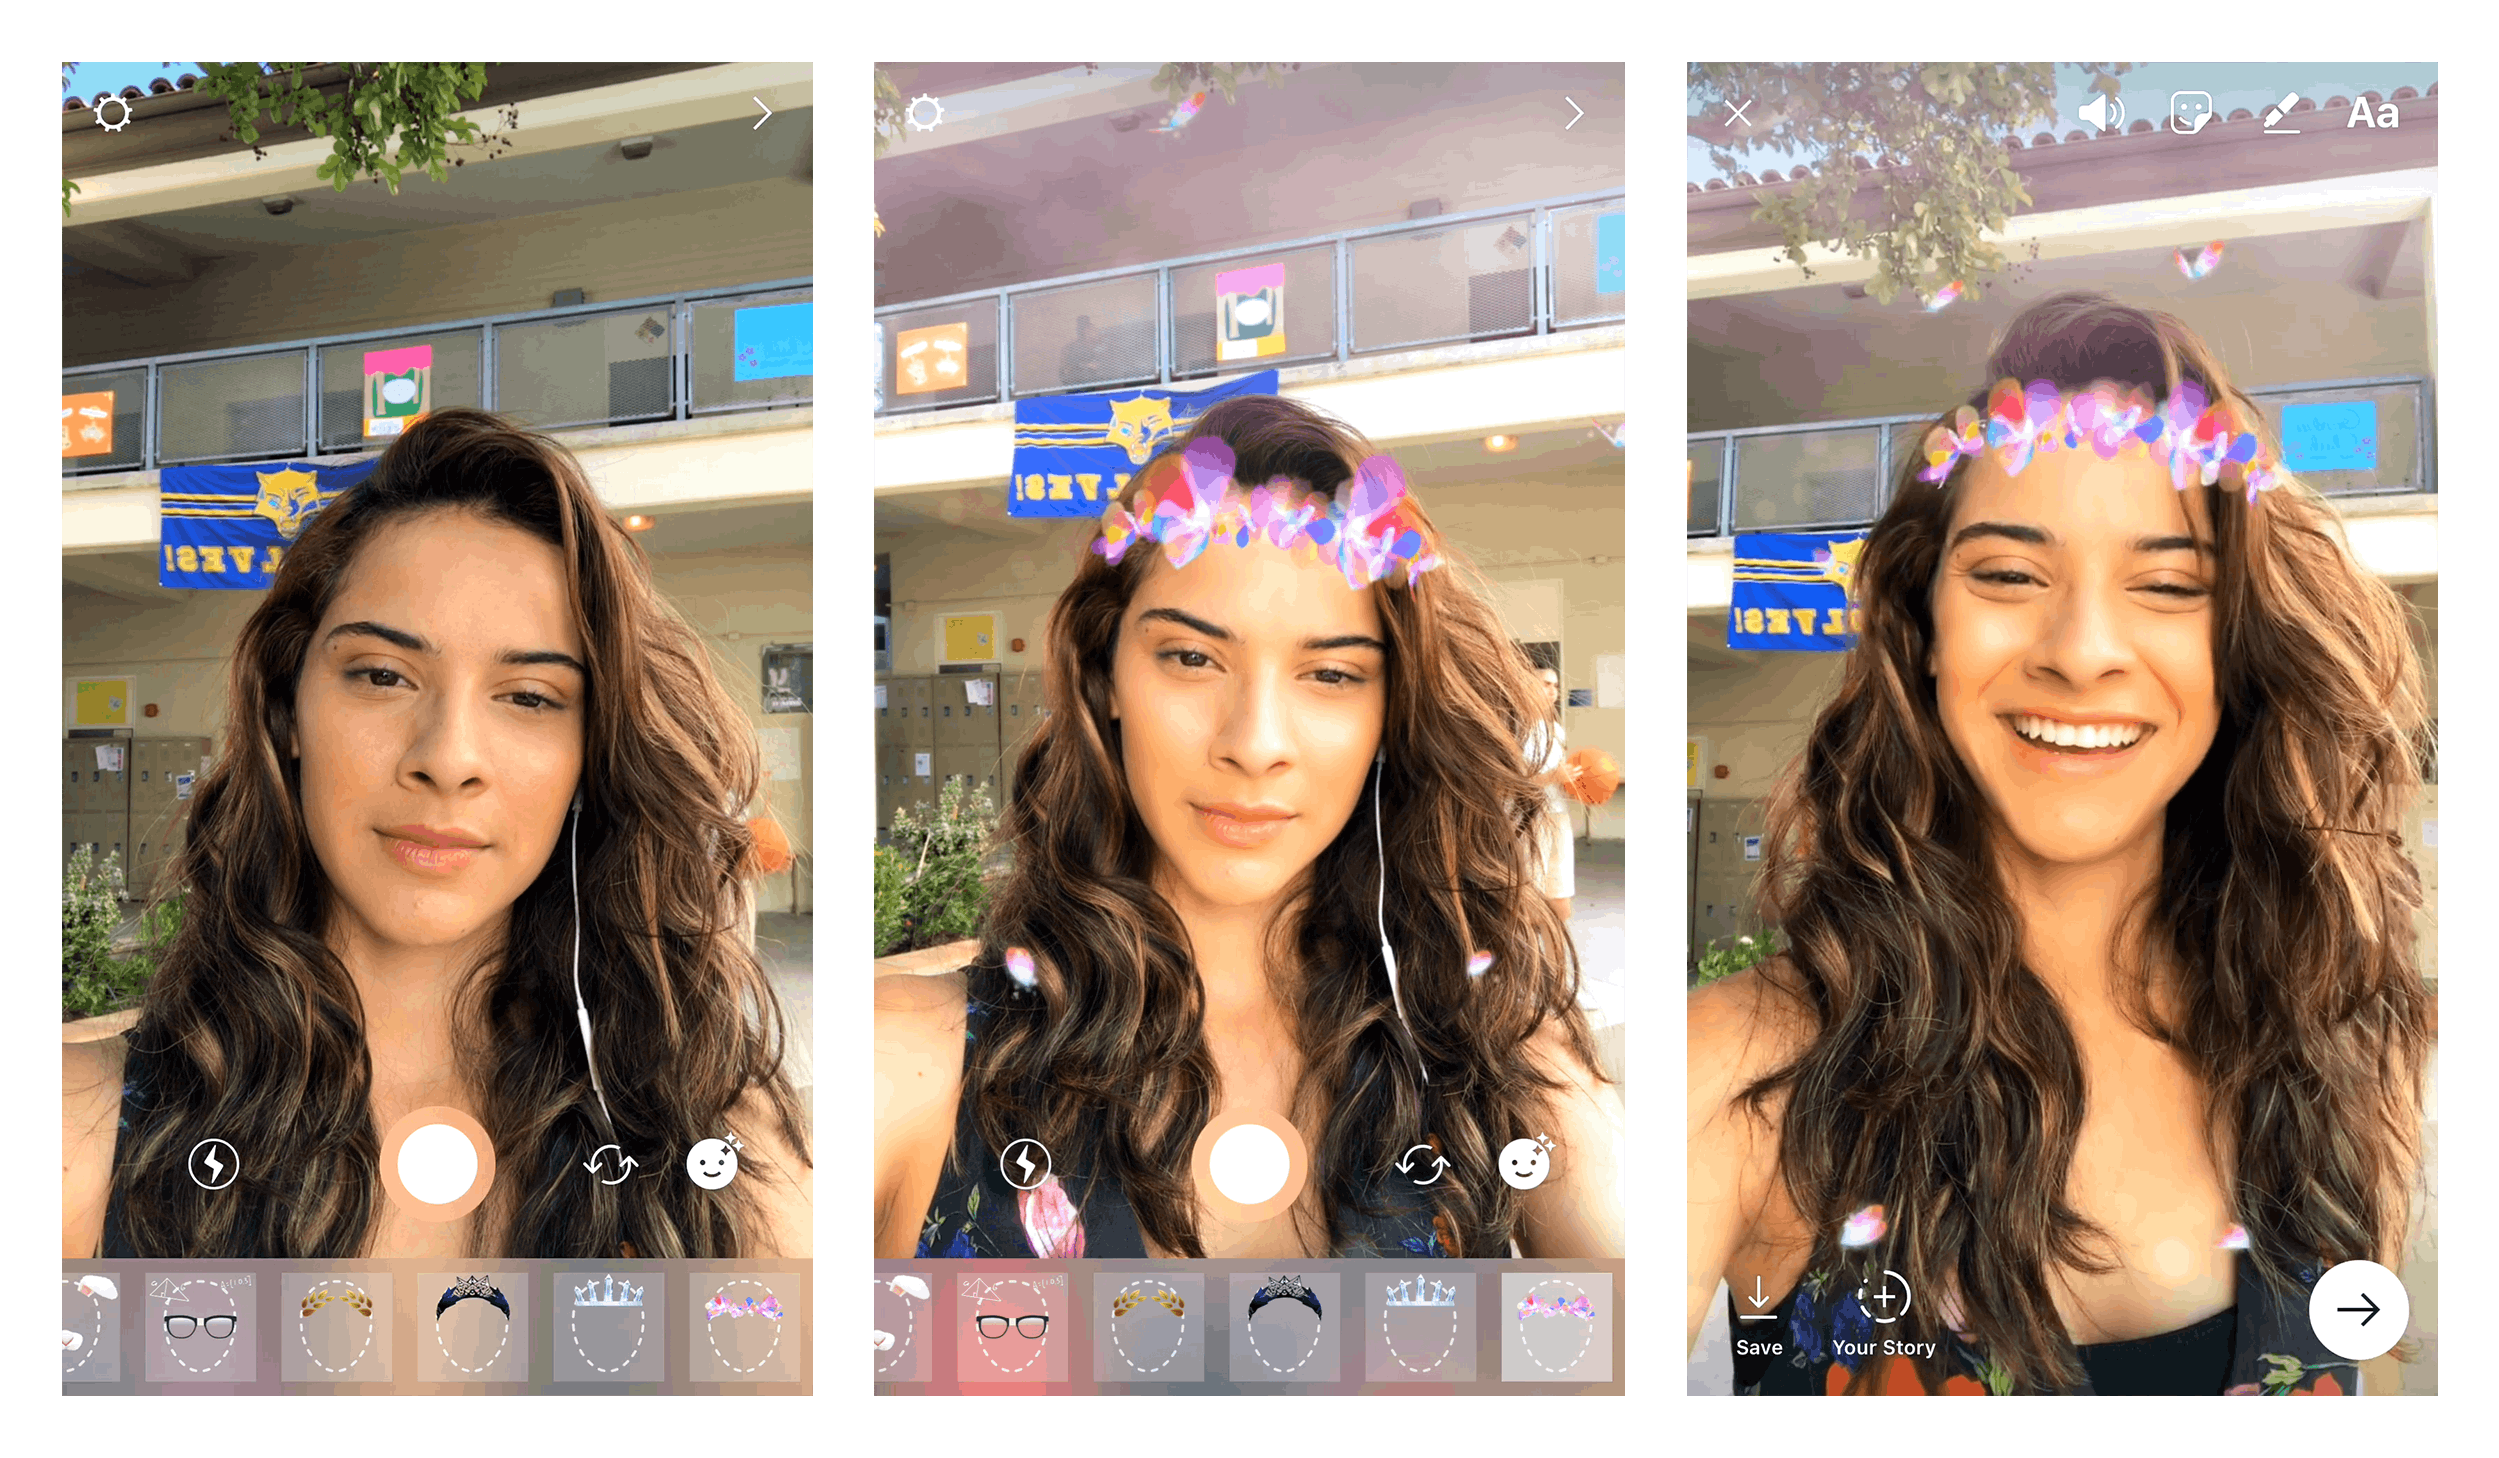 New Instagram face filters are a lot like Snapchat